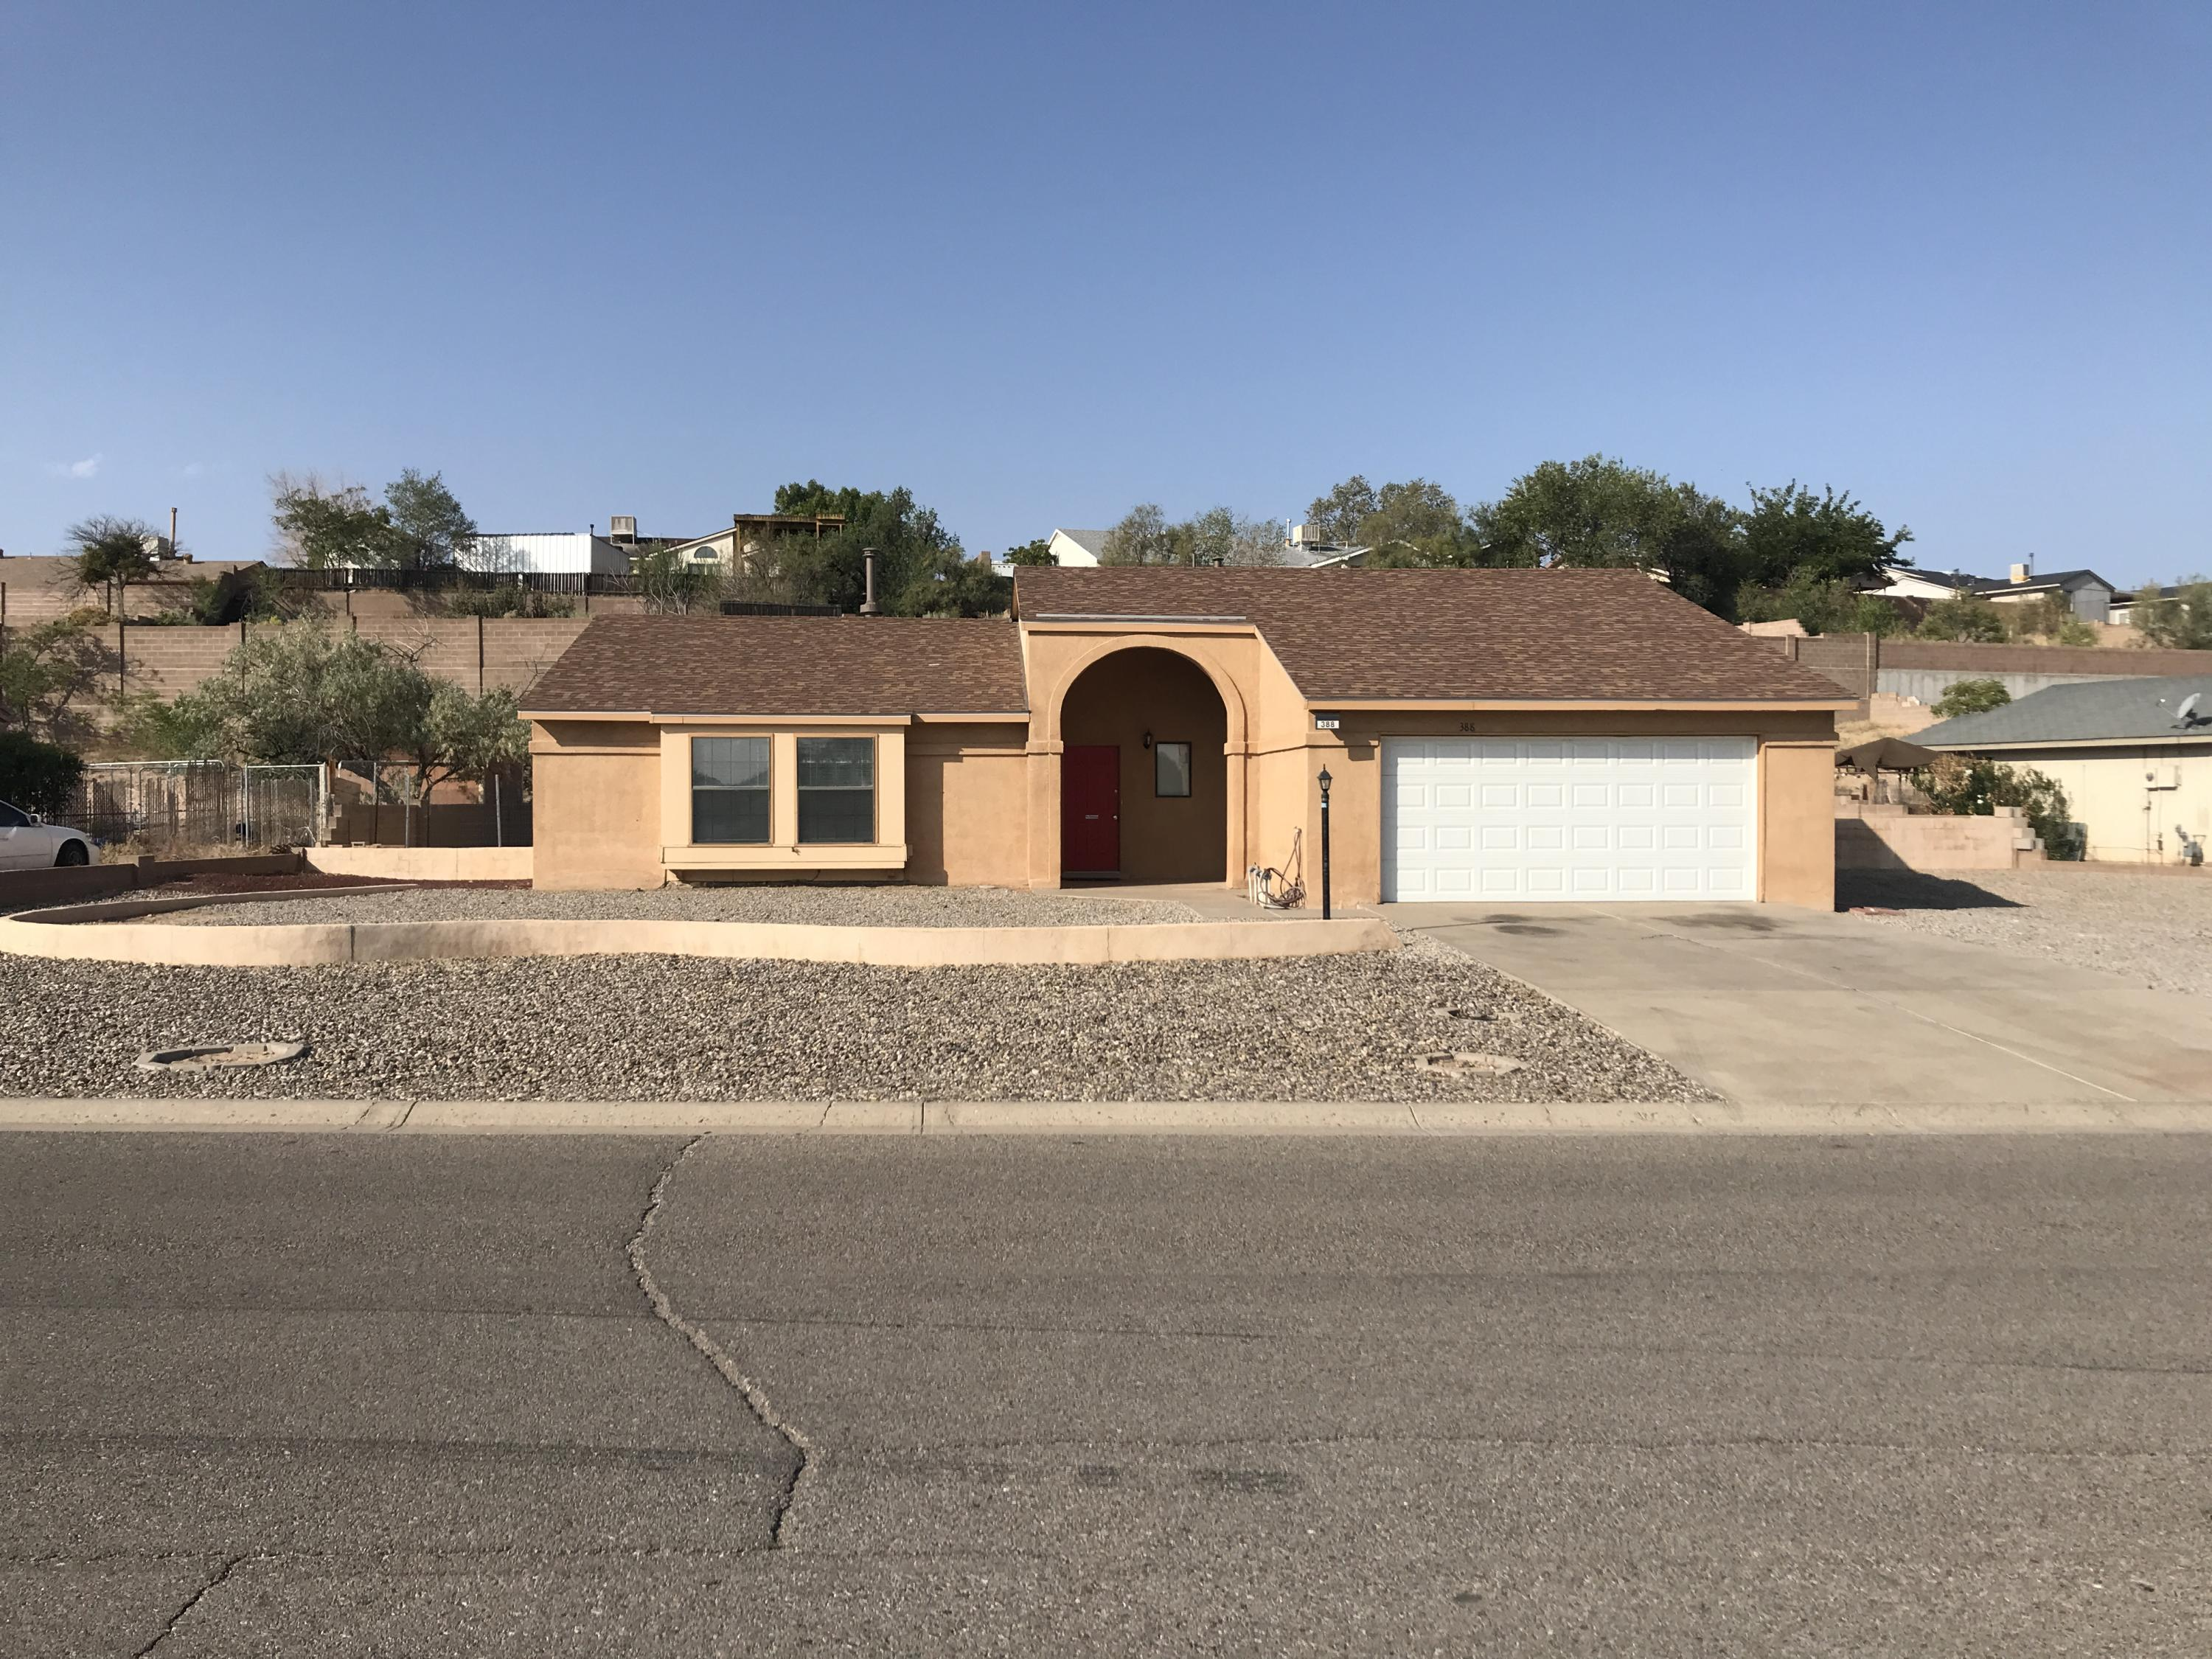 Very Nice 3 bedroom, 2 full bath, Home with double car garage, large backyard, and large area on side of home to park as well. Close to park and the main 528 road.